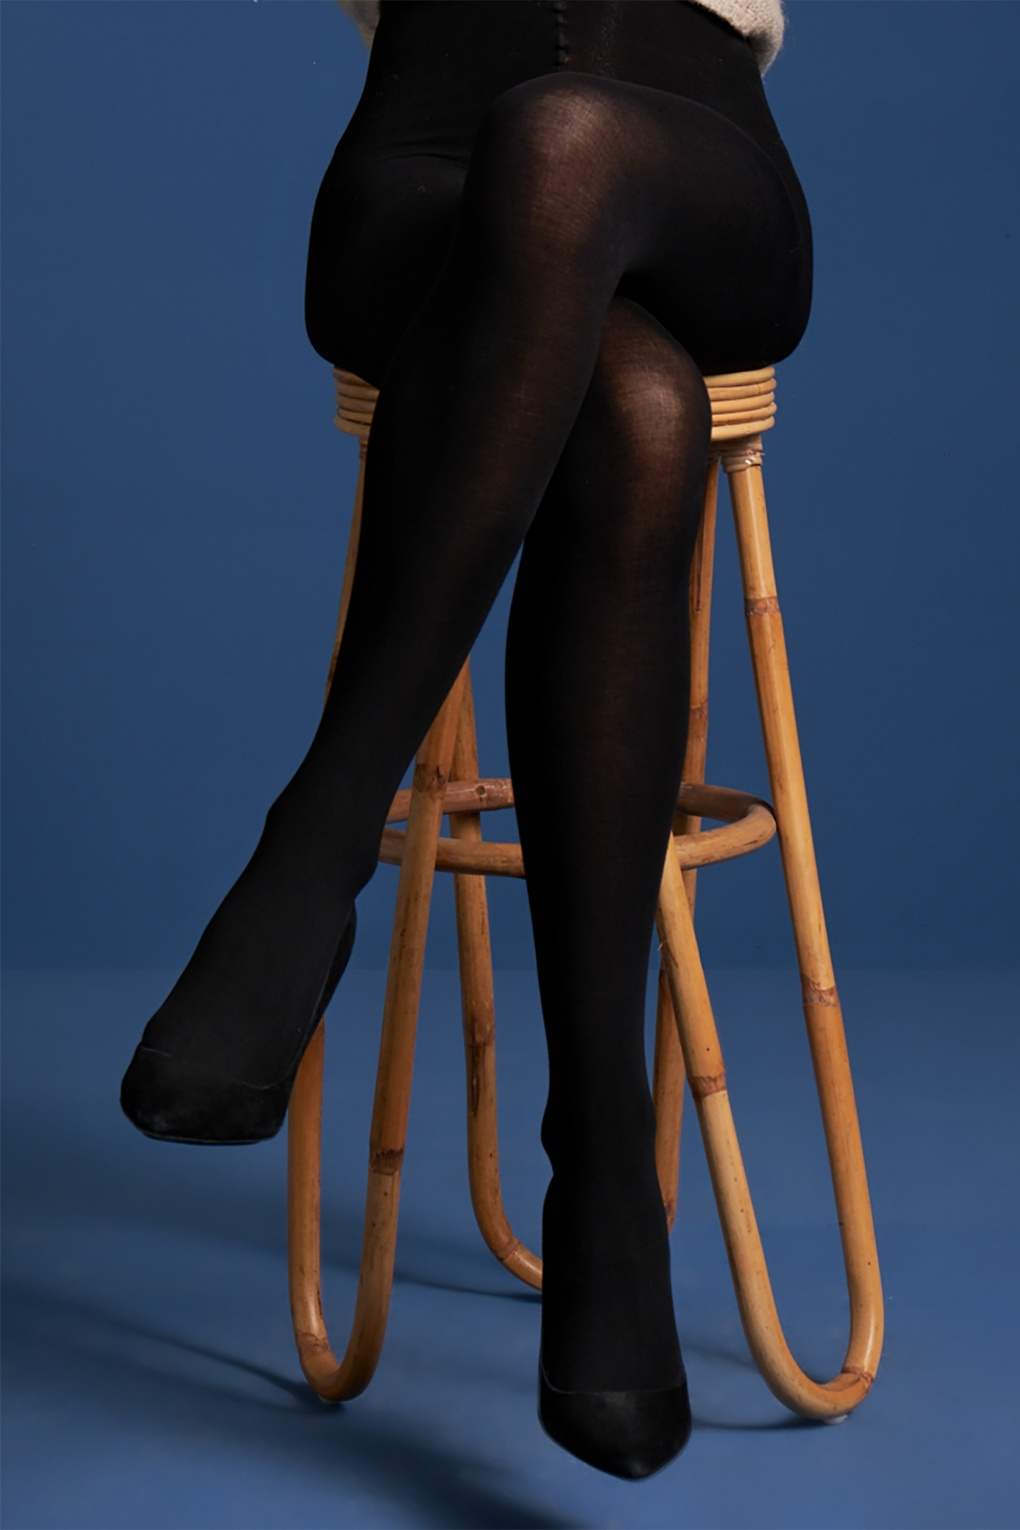 1960s Style Dresses, Clothing, Shoes UK 60s Modal Tights in Black £17.46 AT vintagedancer.com